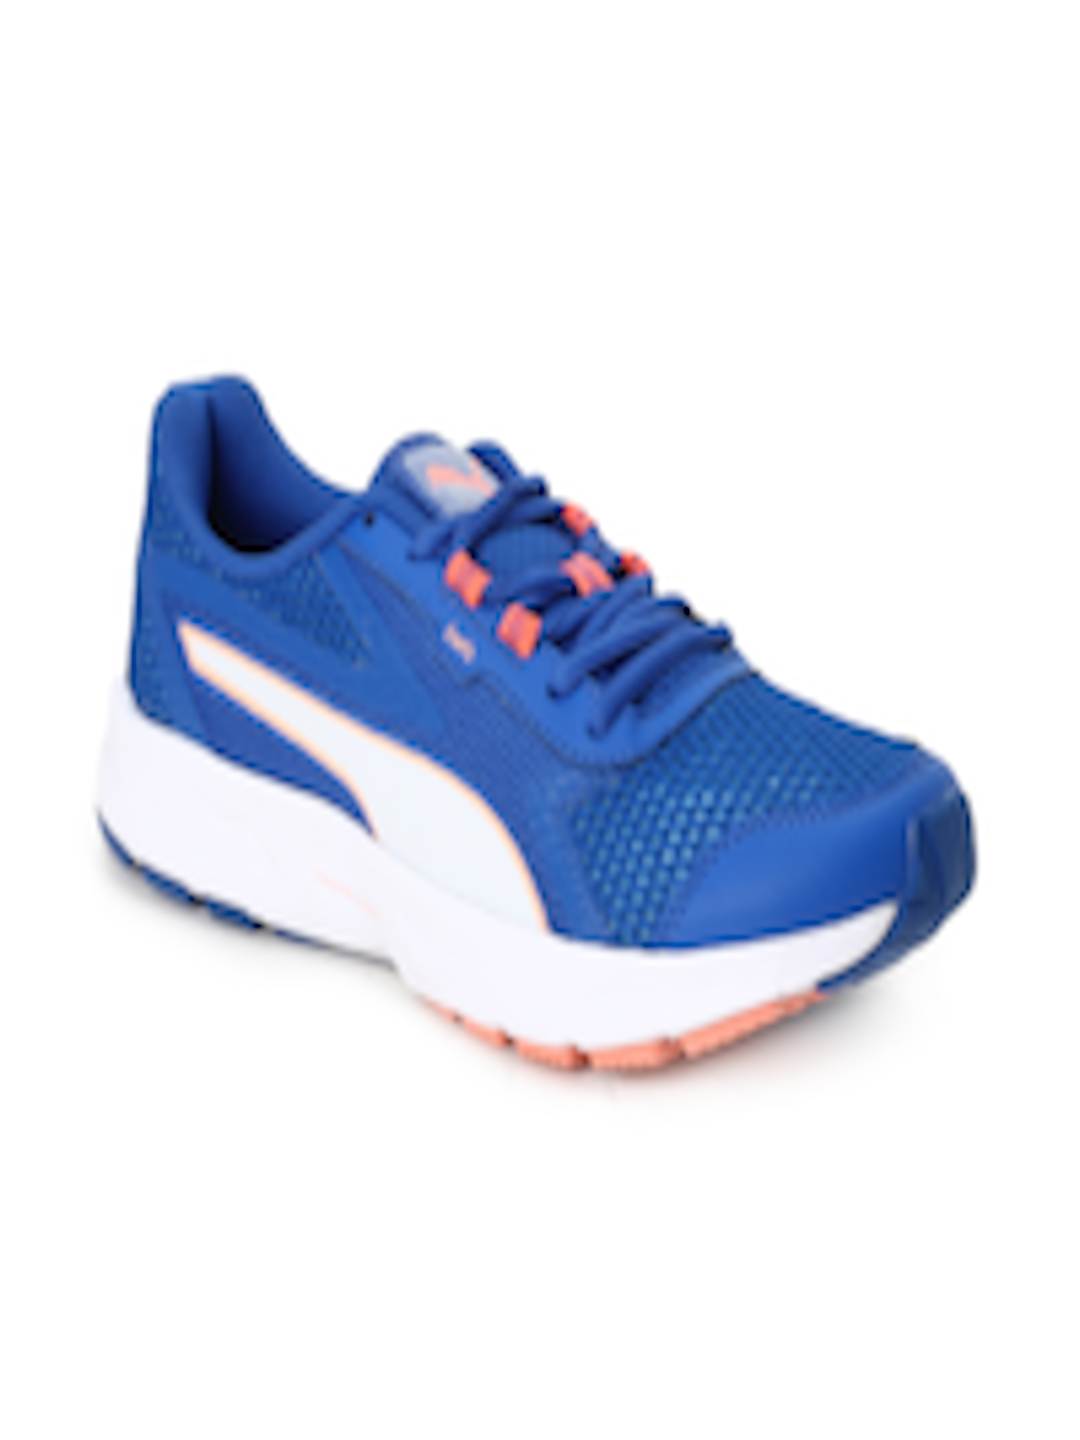 99b894ee77cc Buy Puma Women Blue Mesh Mid Top Running Shoes Essential Runner Wn S IDP - Sports  Shoes for Women 2354346